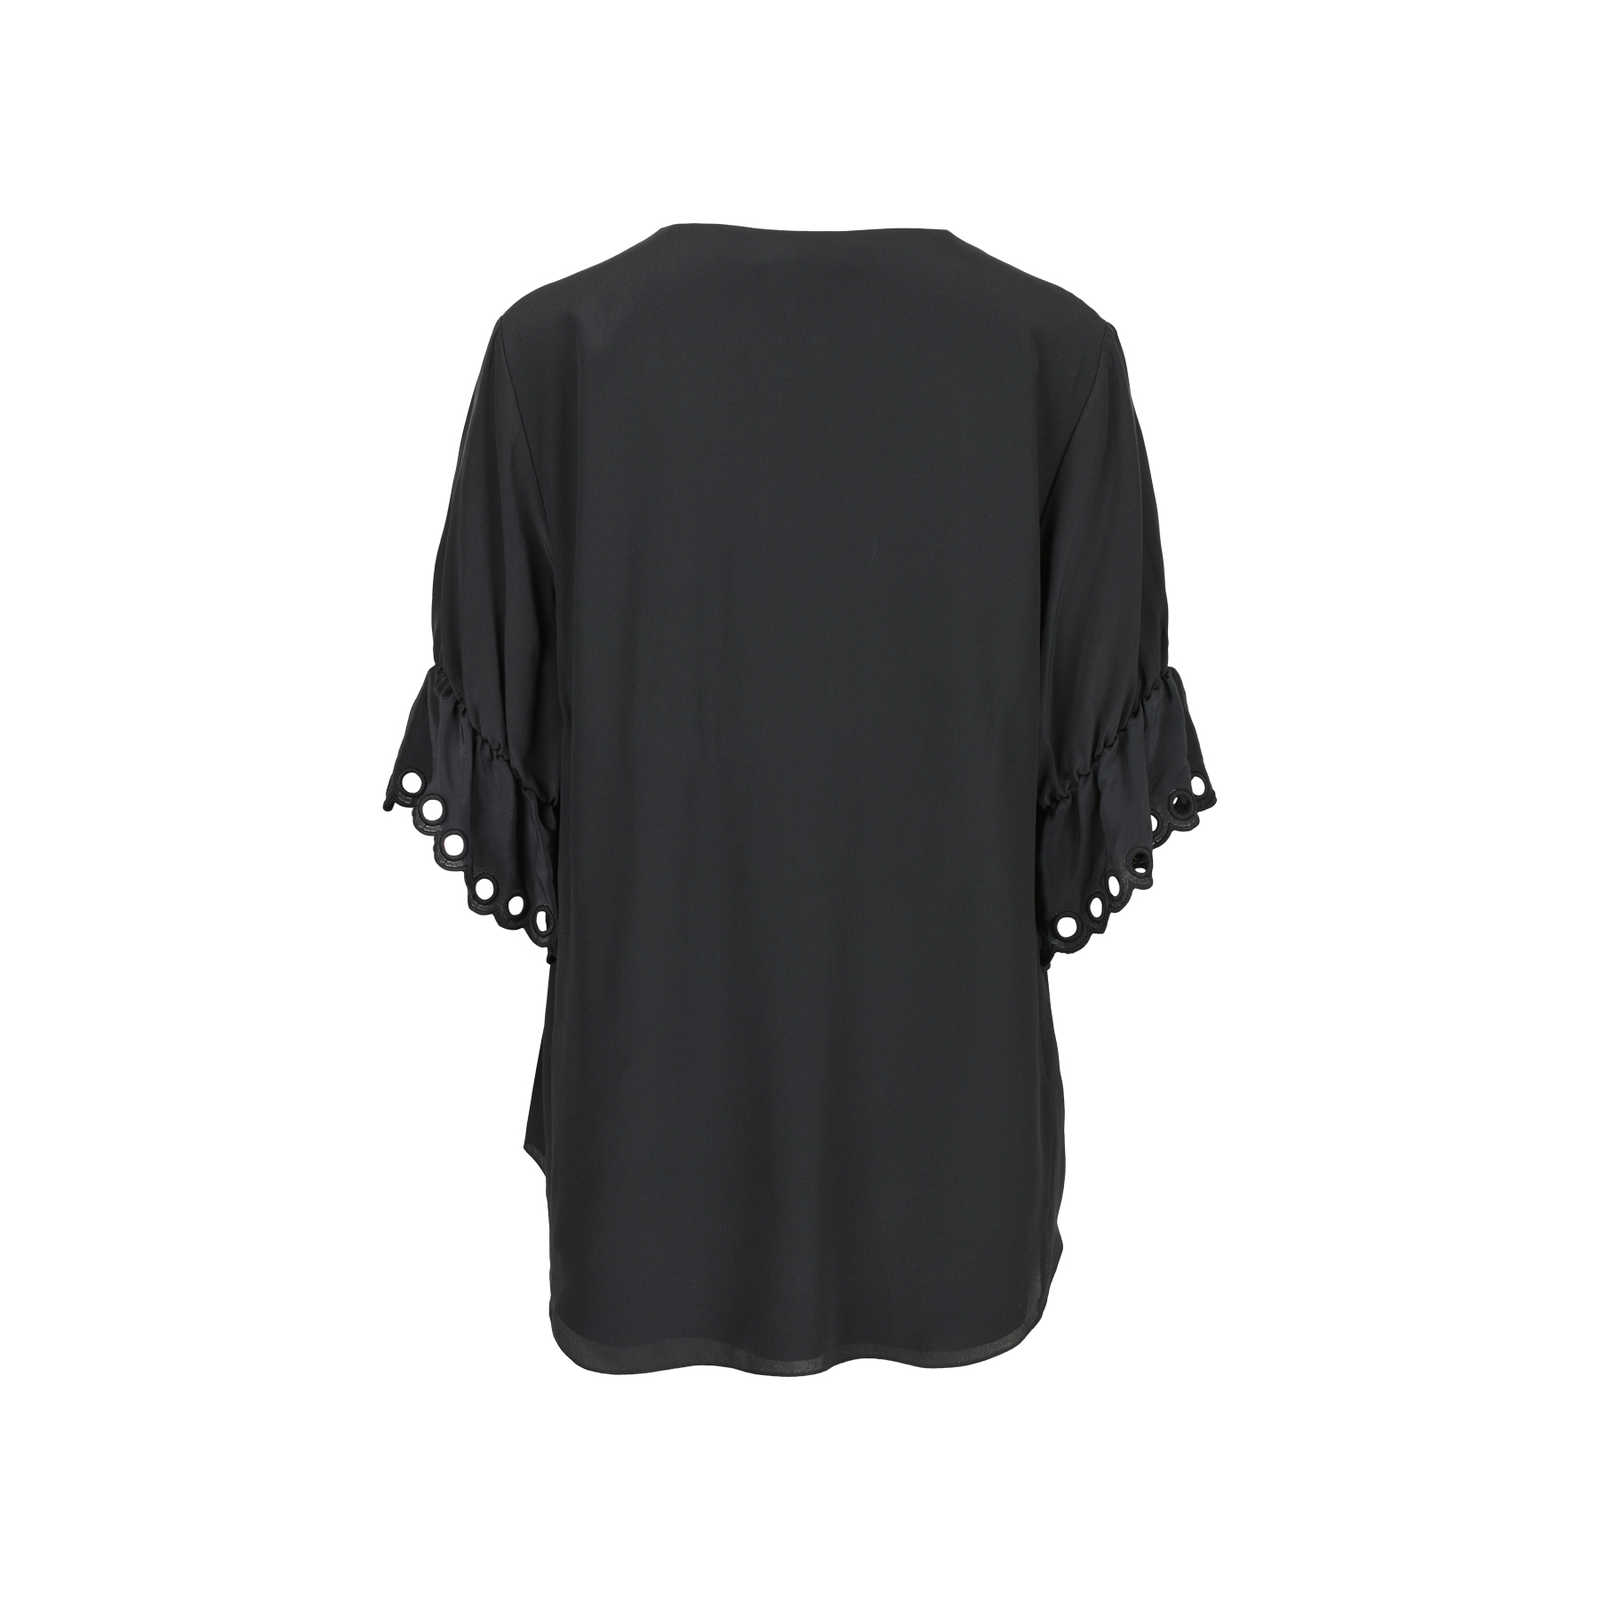 5705b5398c640 ... Authentic Second Hand Chloé Embroidered Silk Crepe De Chine Top  (PSS-470-00073 ...